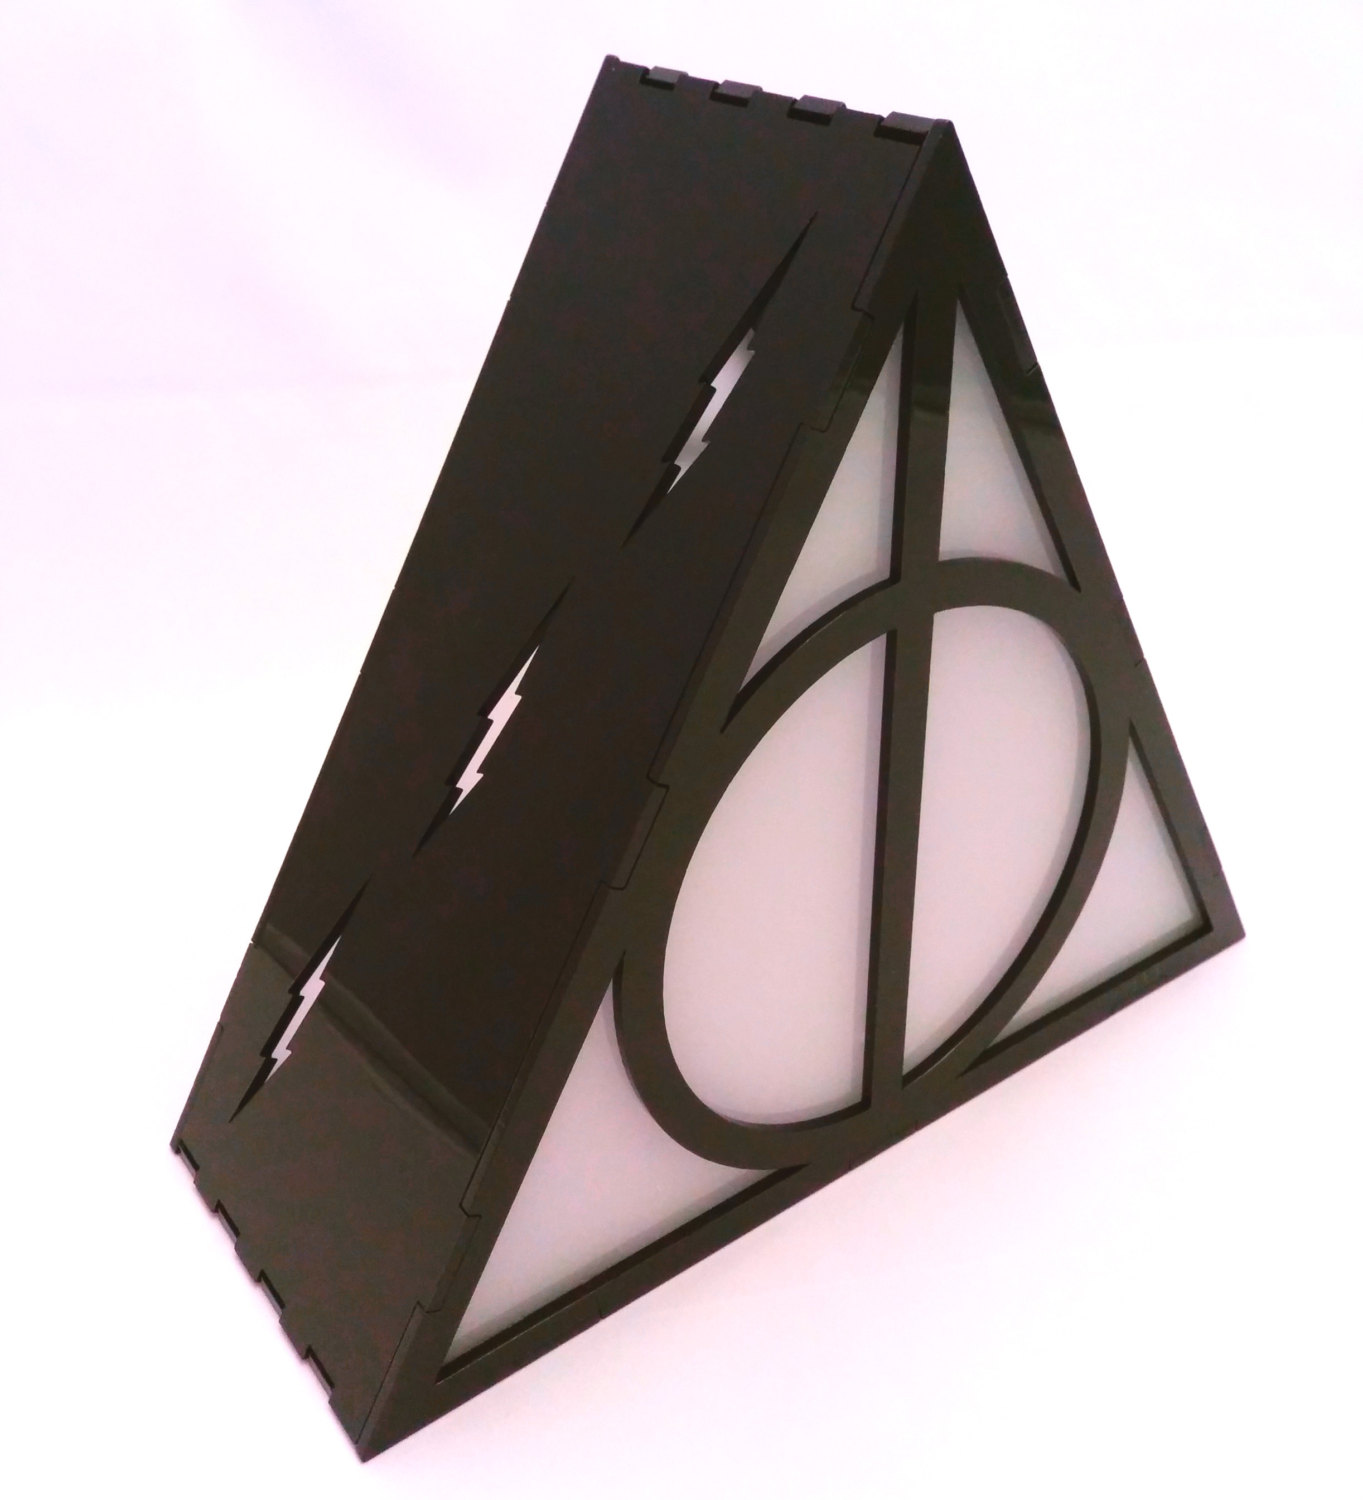 Harry potter deathly hallows lamp the plasmatorium harry potter deathly hallows lamp biocorpaavc